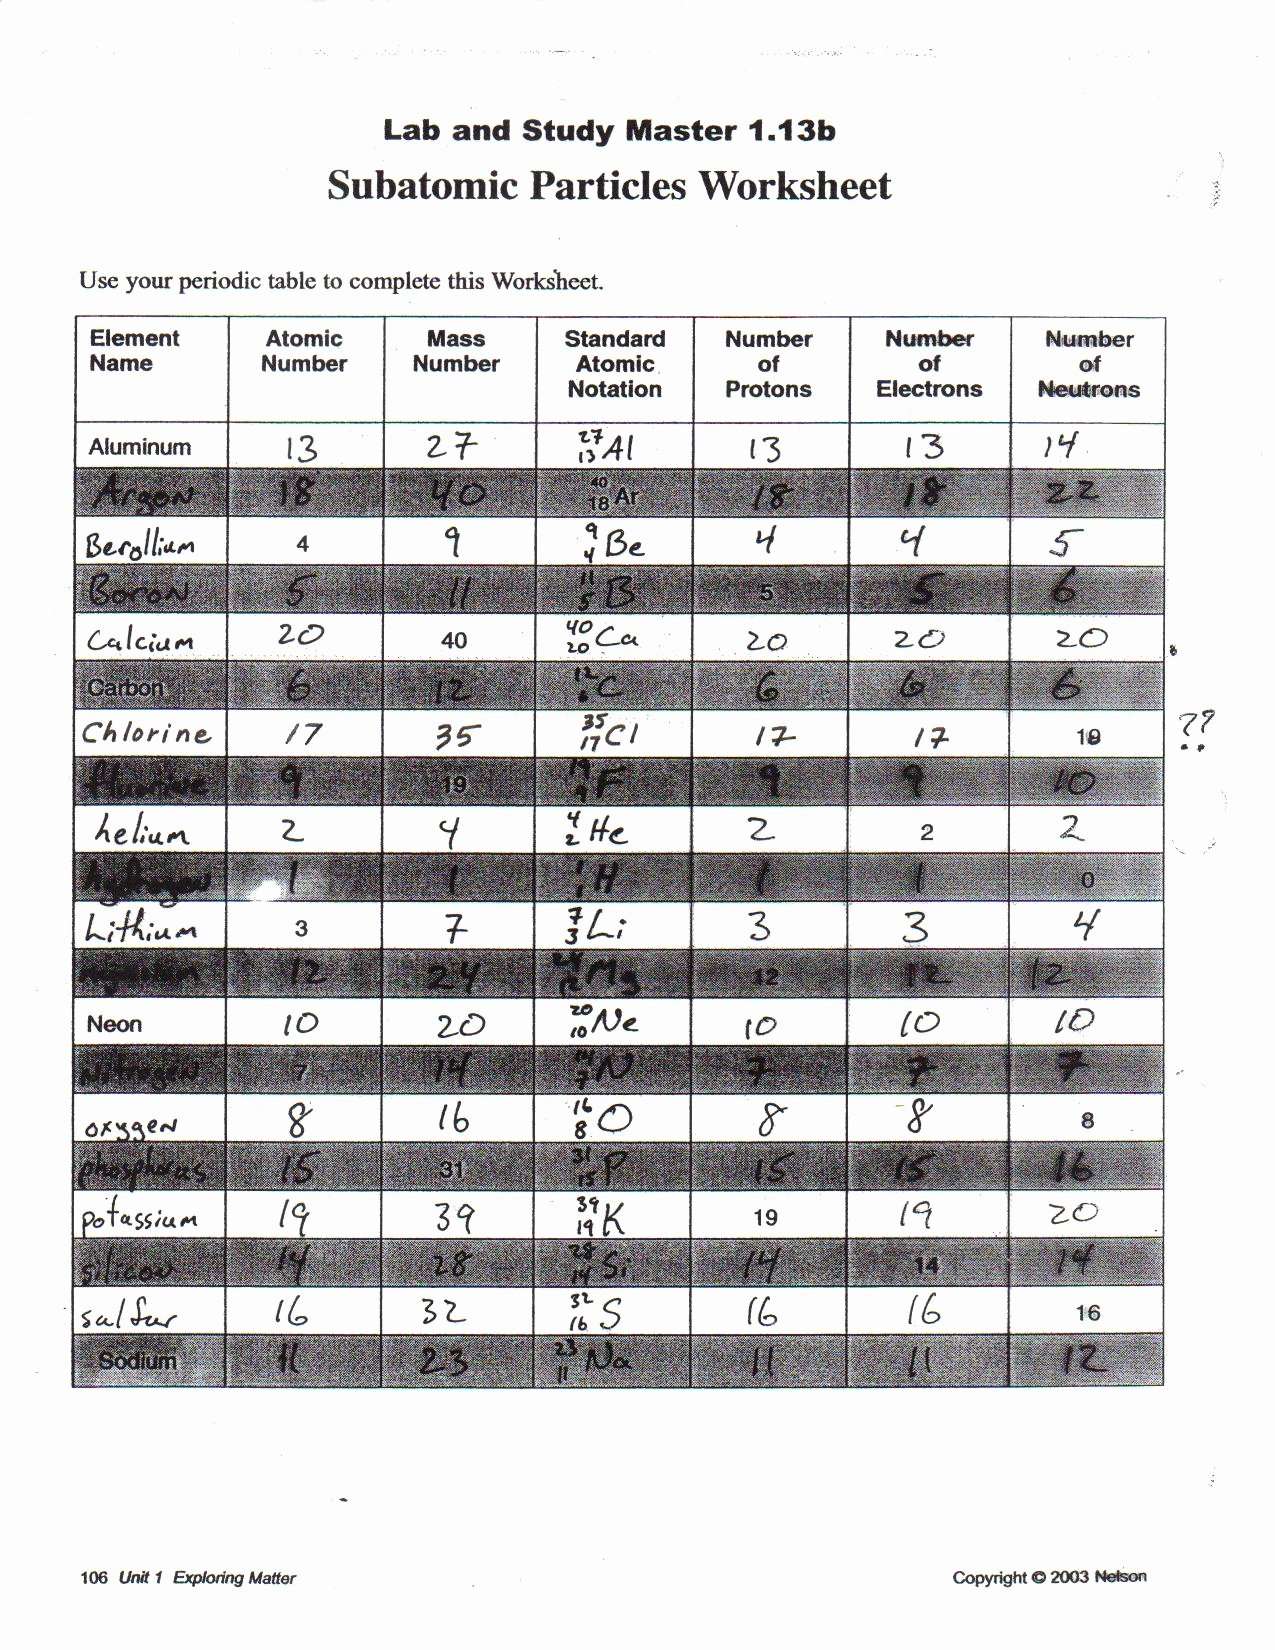 Subatomic Particles Worksheet Answers Beautiful toxic Science